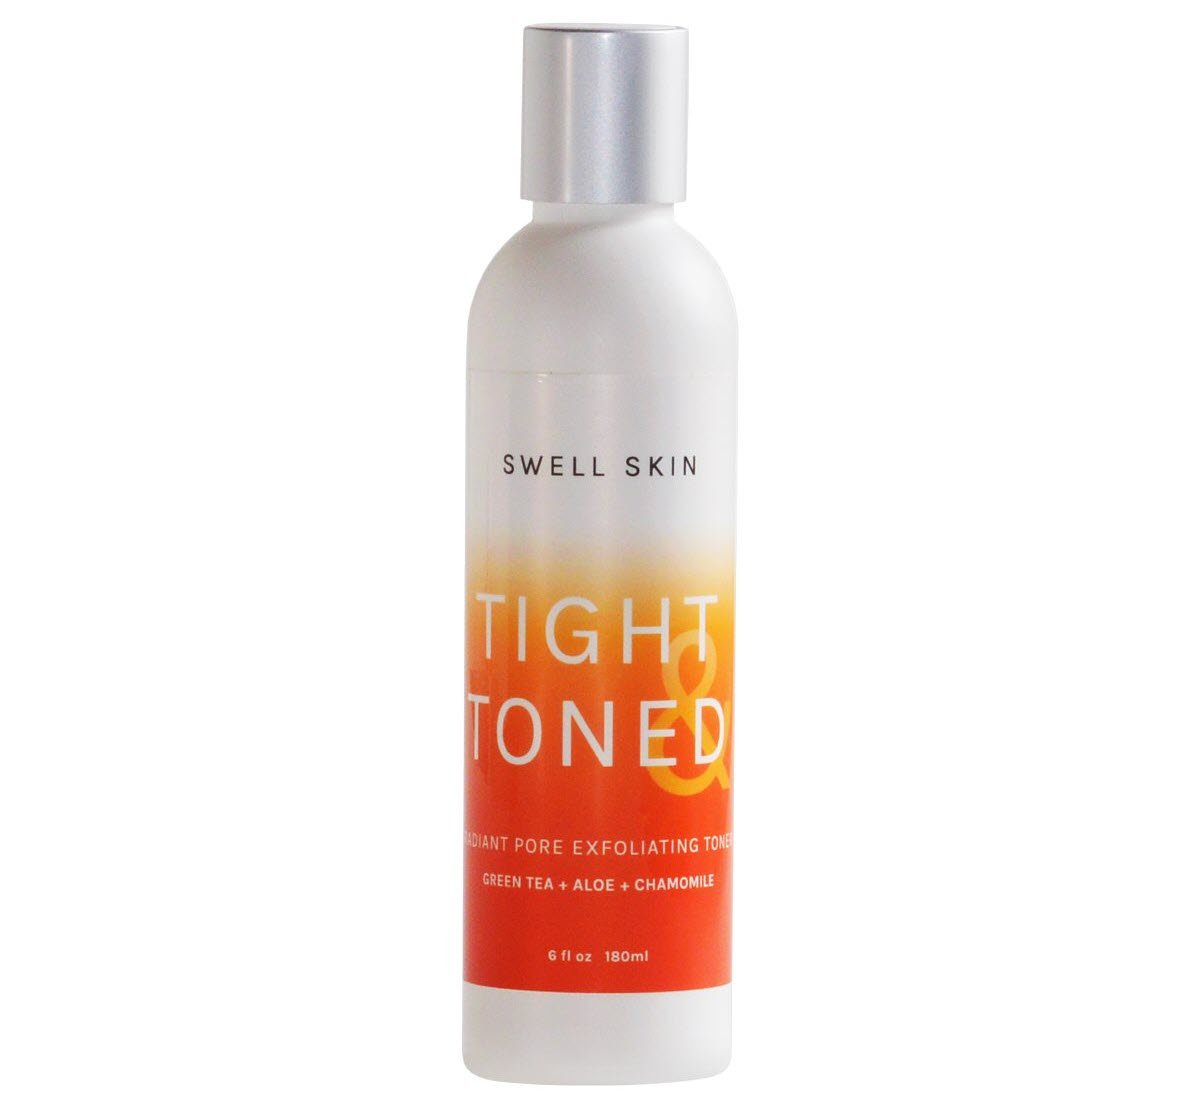 TIGHT & TONED Radiant Pore Exfoliating Toner